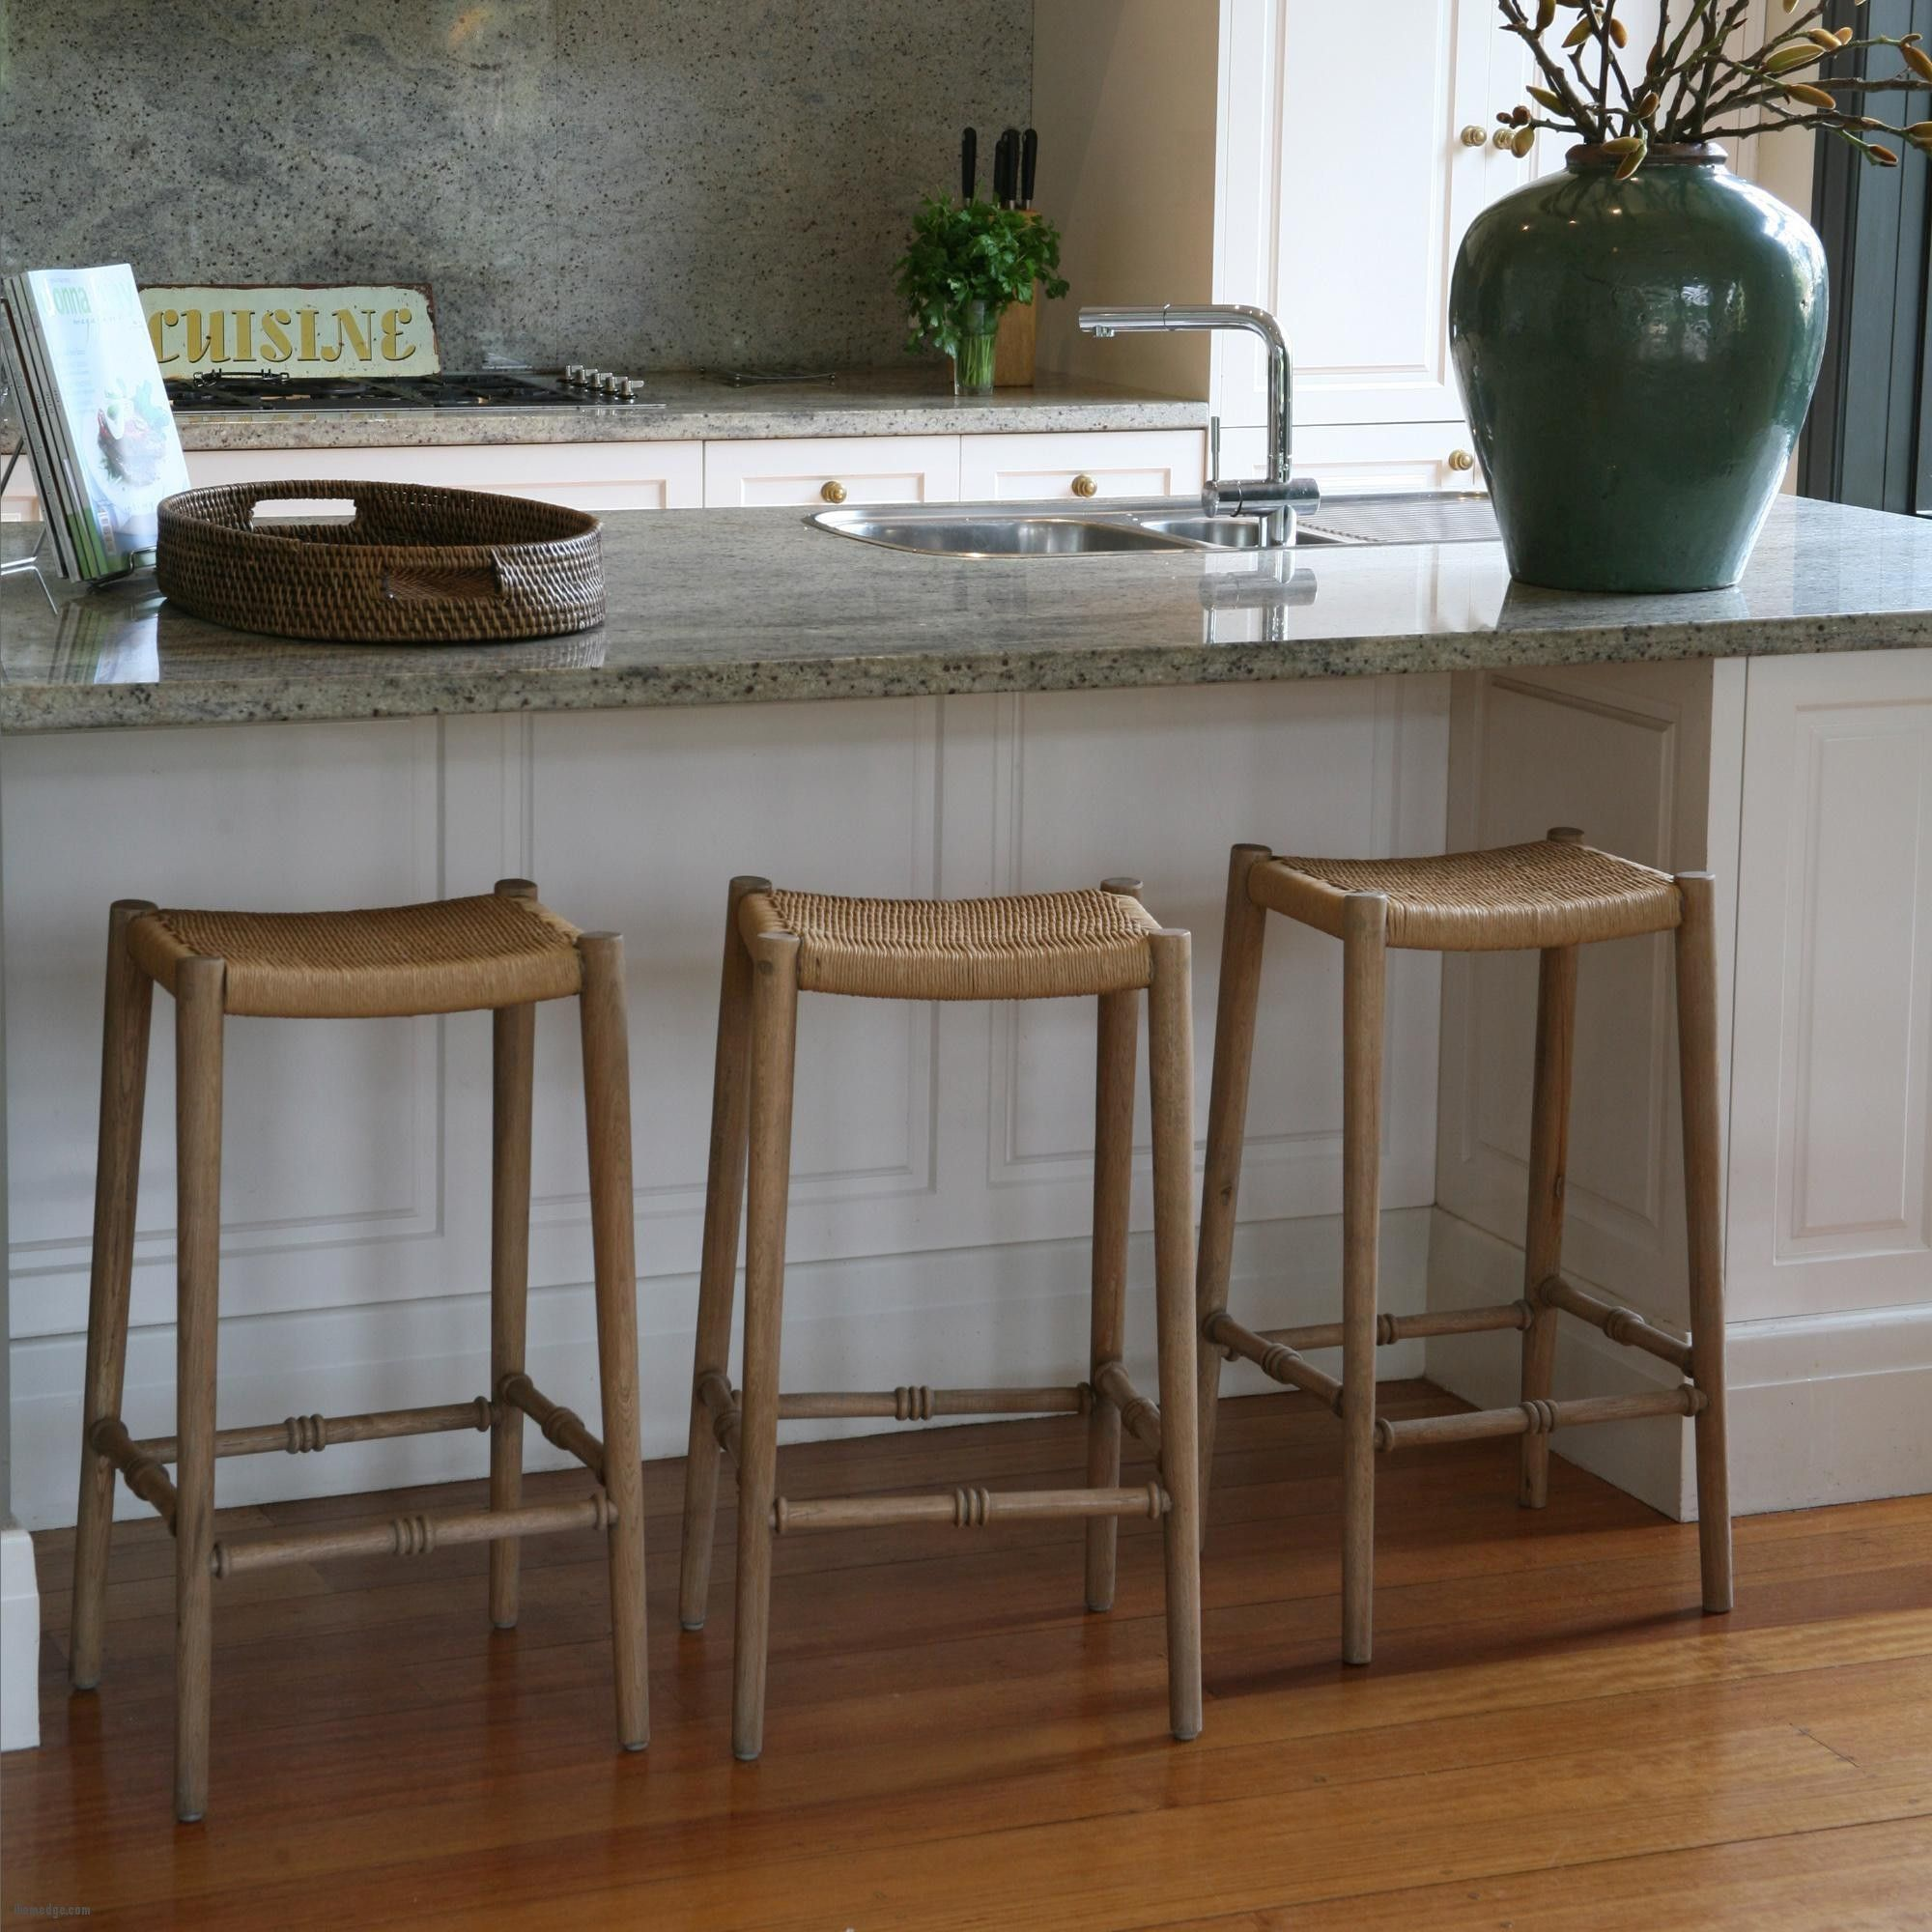 Awesome Fresh Kitchen Counter Stools  Kitchen Counter Chairs Pleasing Counter Stools For Kitchen Design Decoration